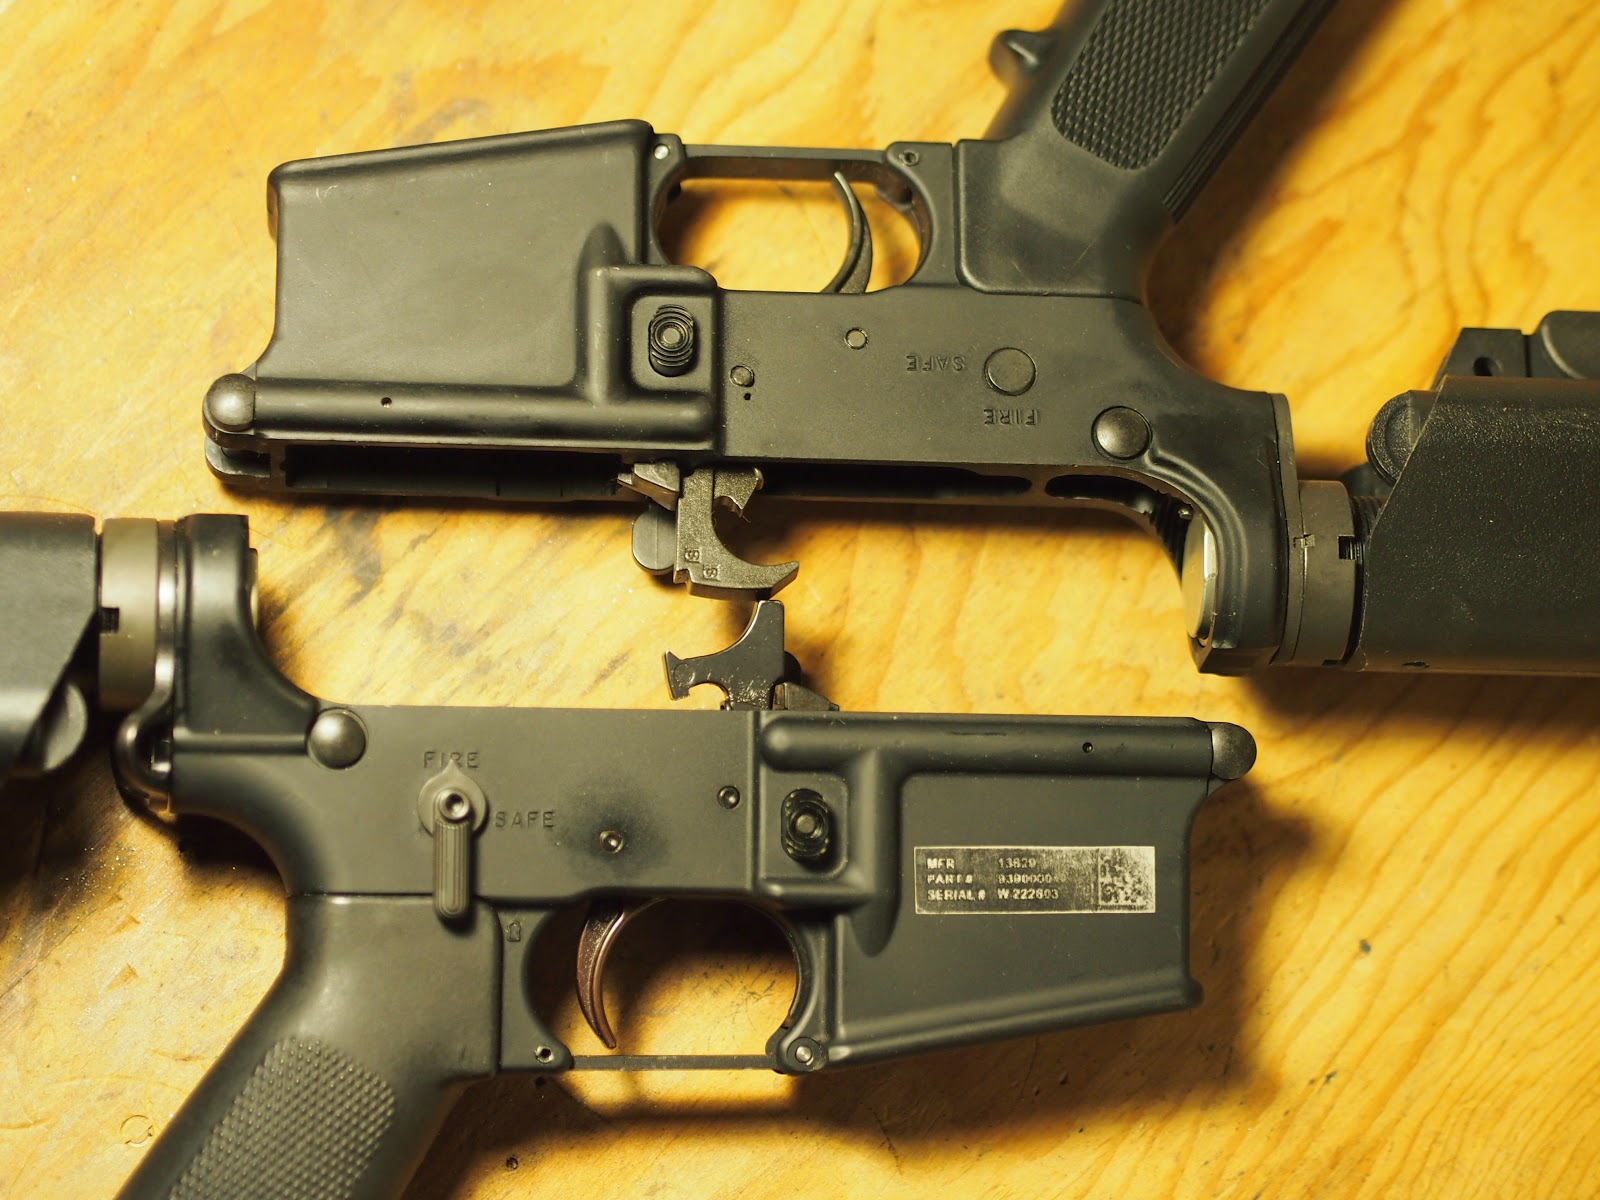 Mister Donut's Firearms Blog: Colt LE6920 lower